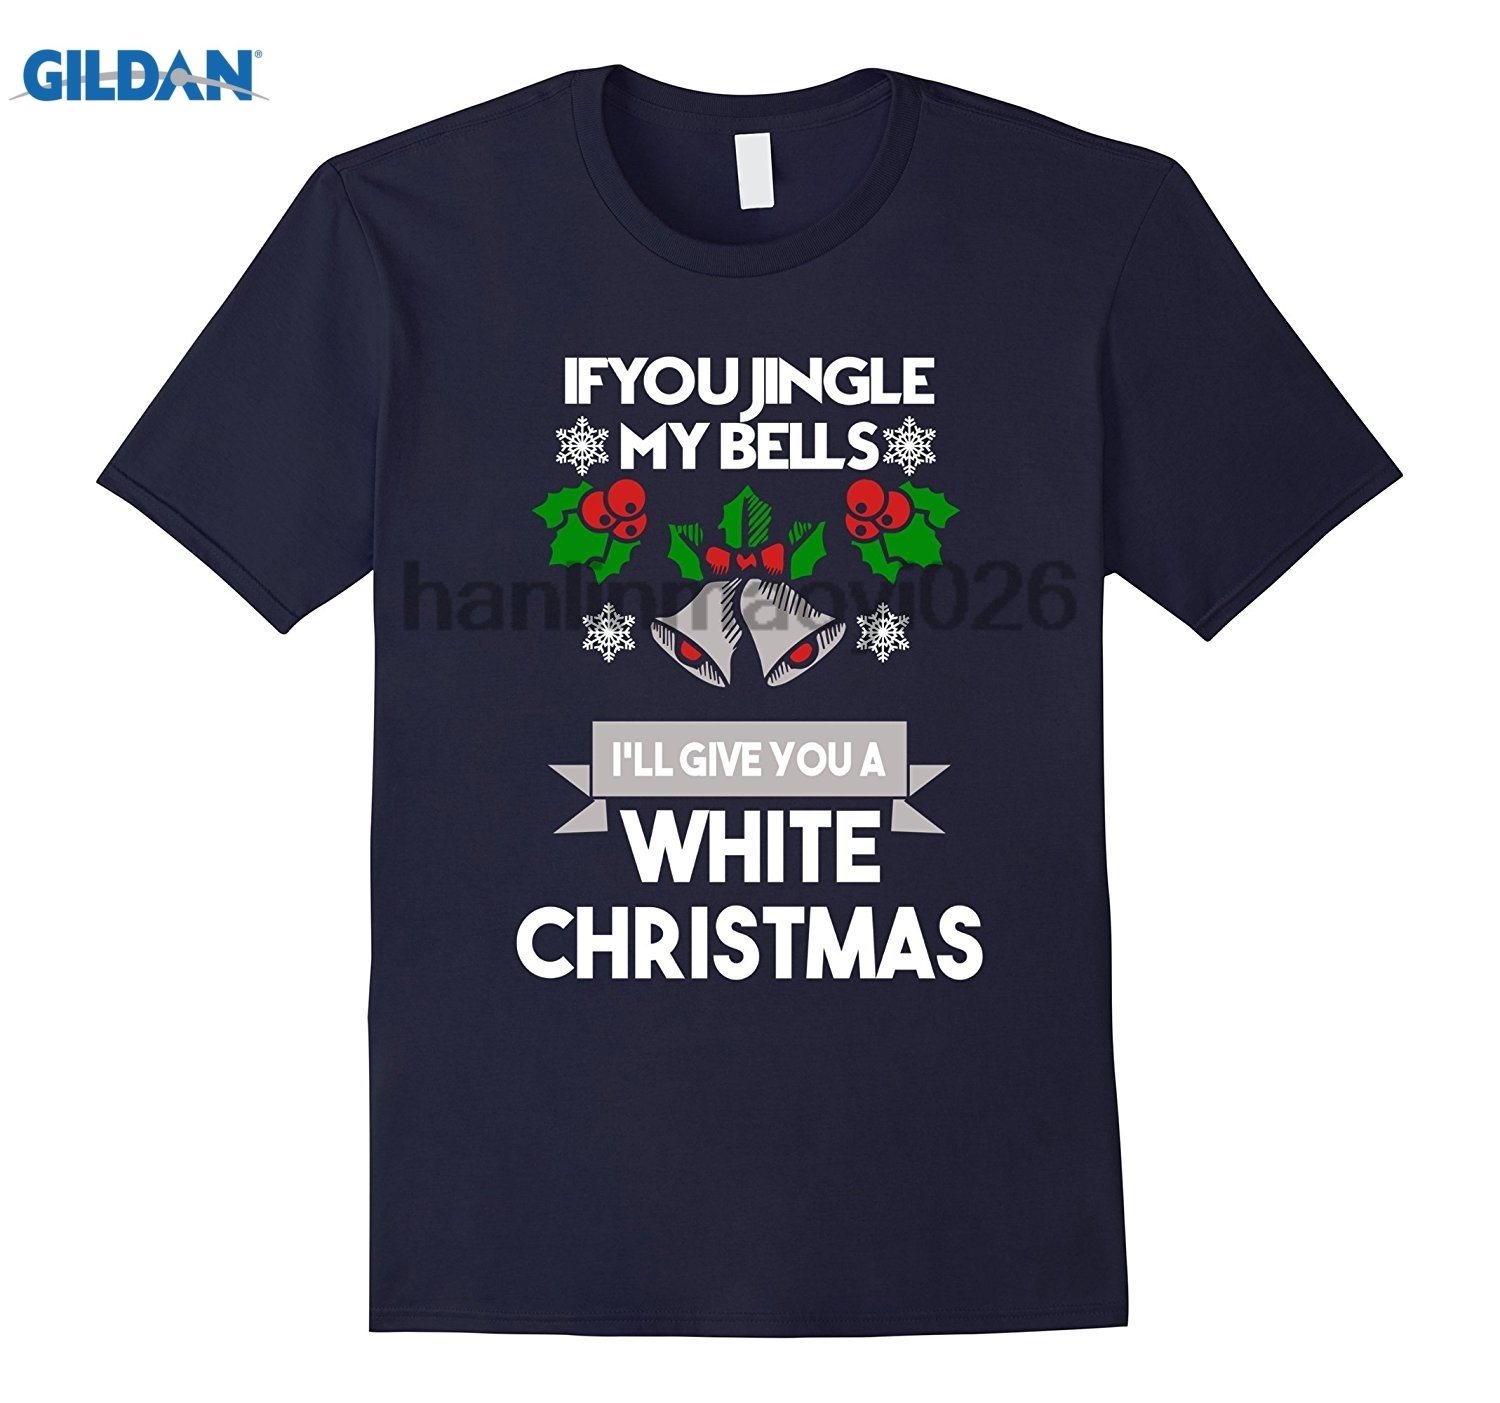 GILDAN Mens If You Jingle My Bells Ill Give You A White Christmas TShir ...